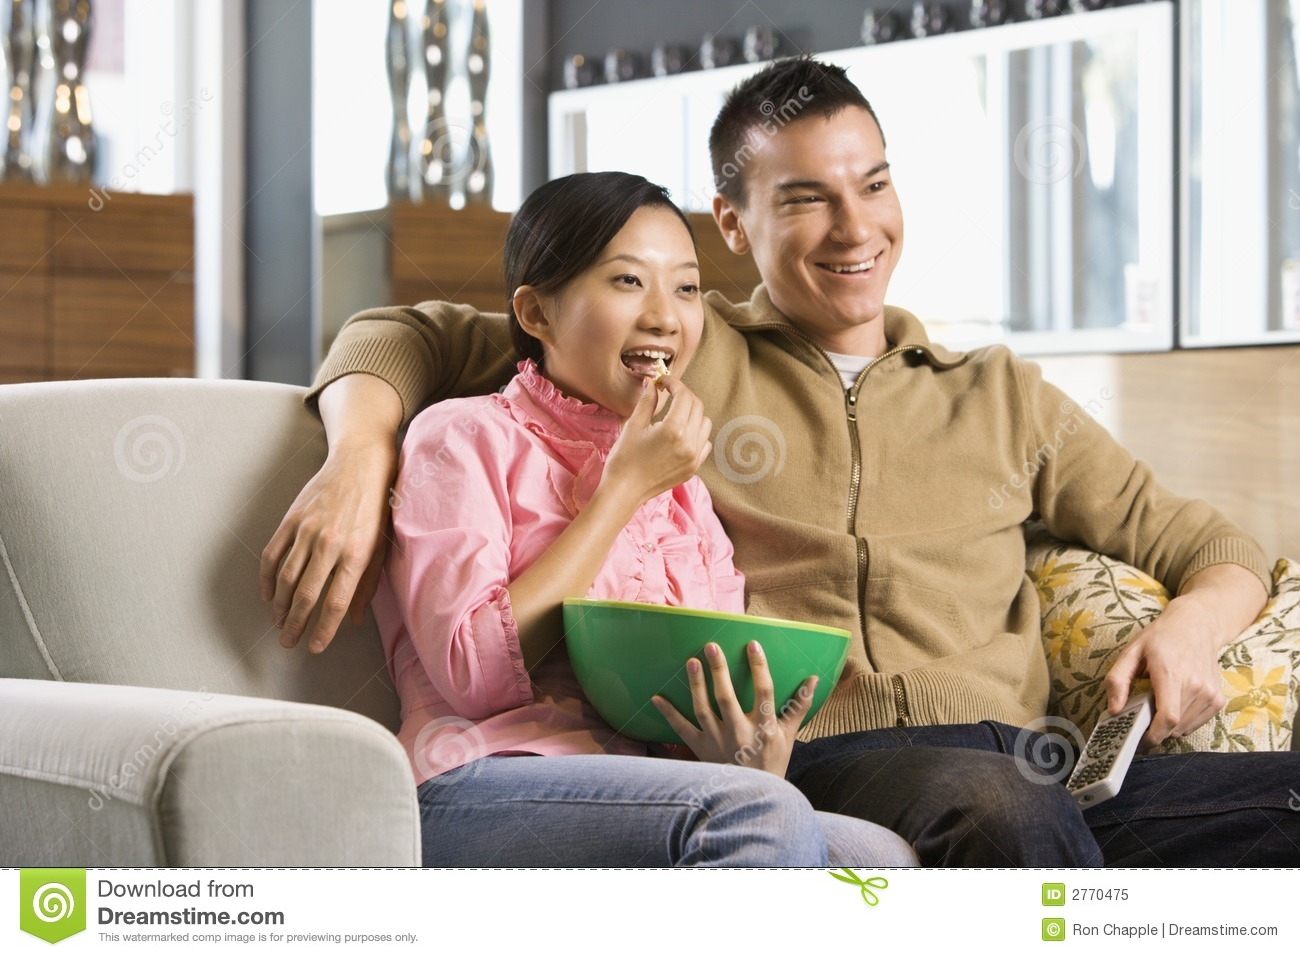 Couples regardant la TV.